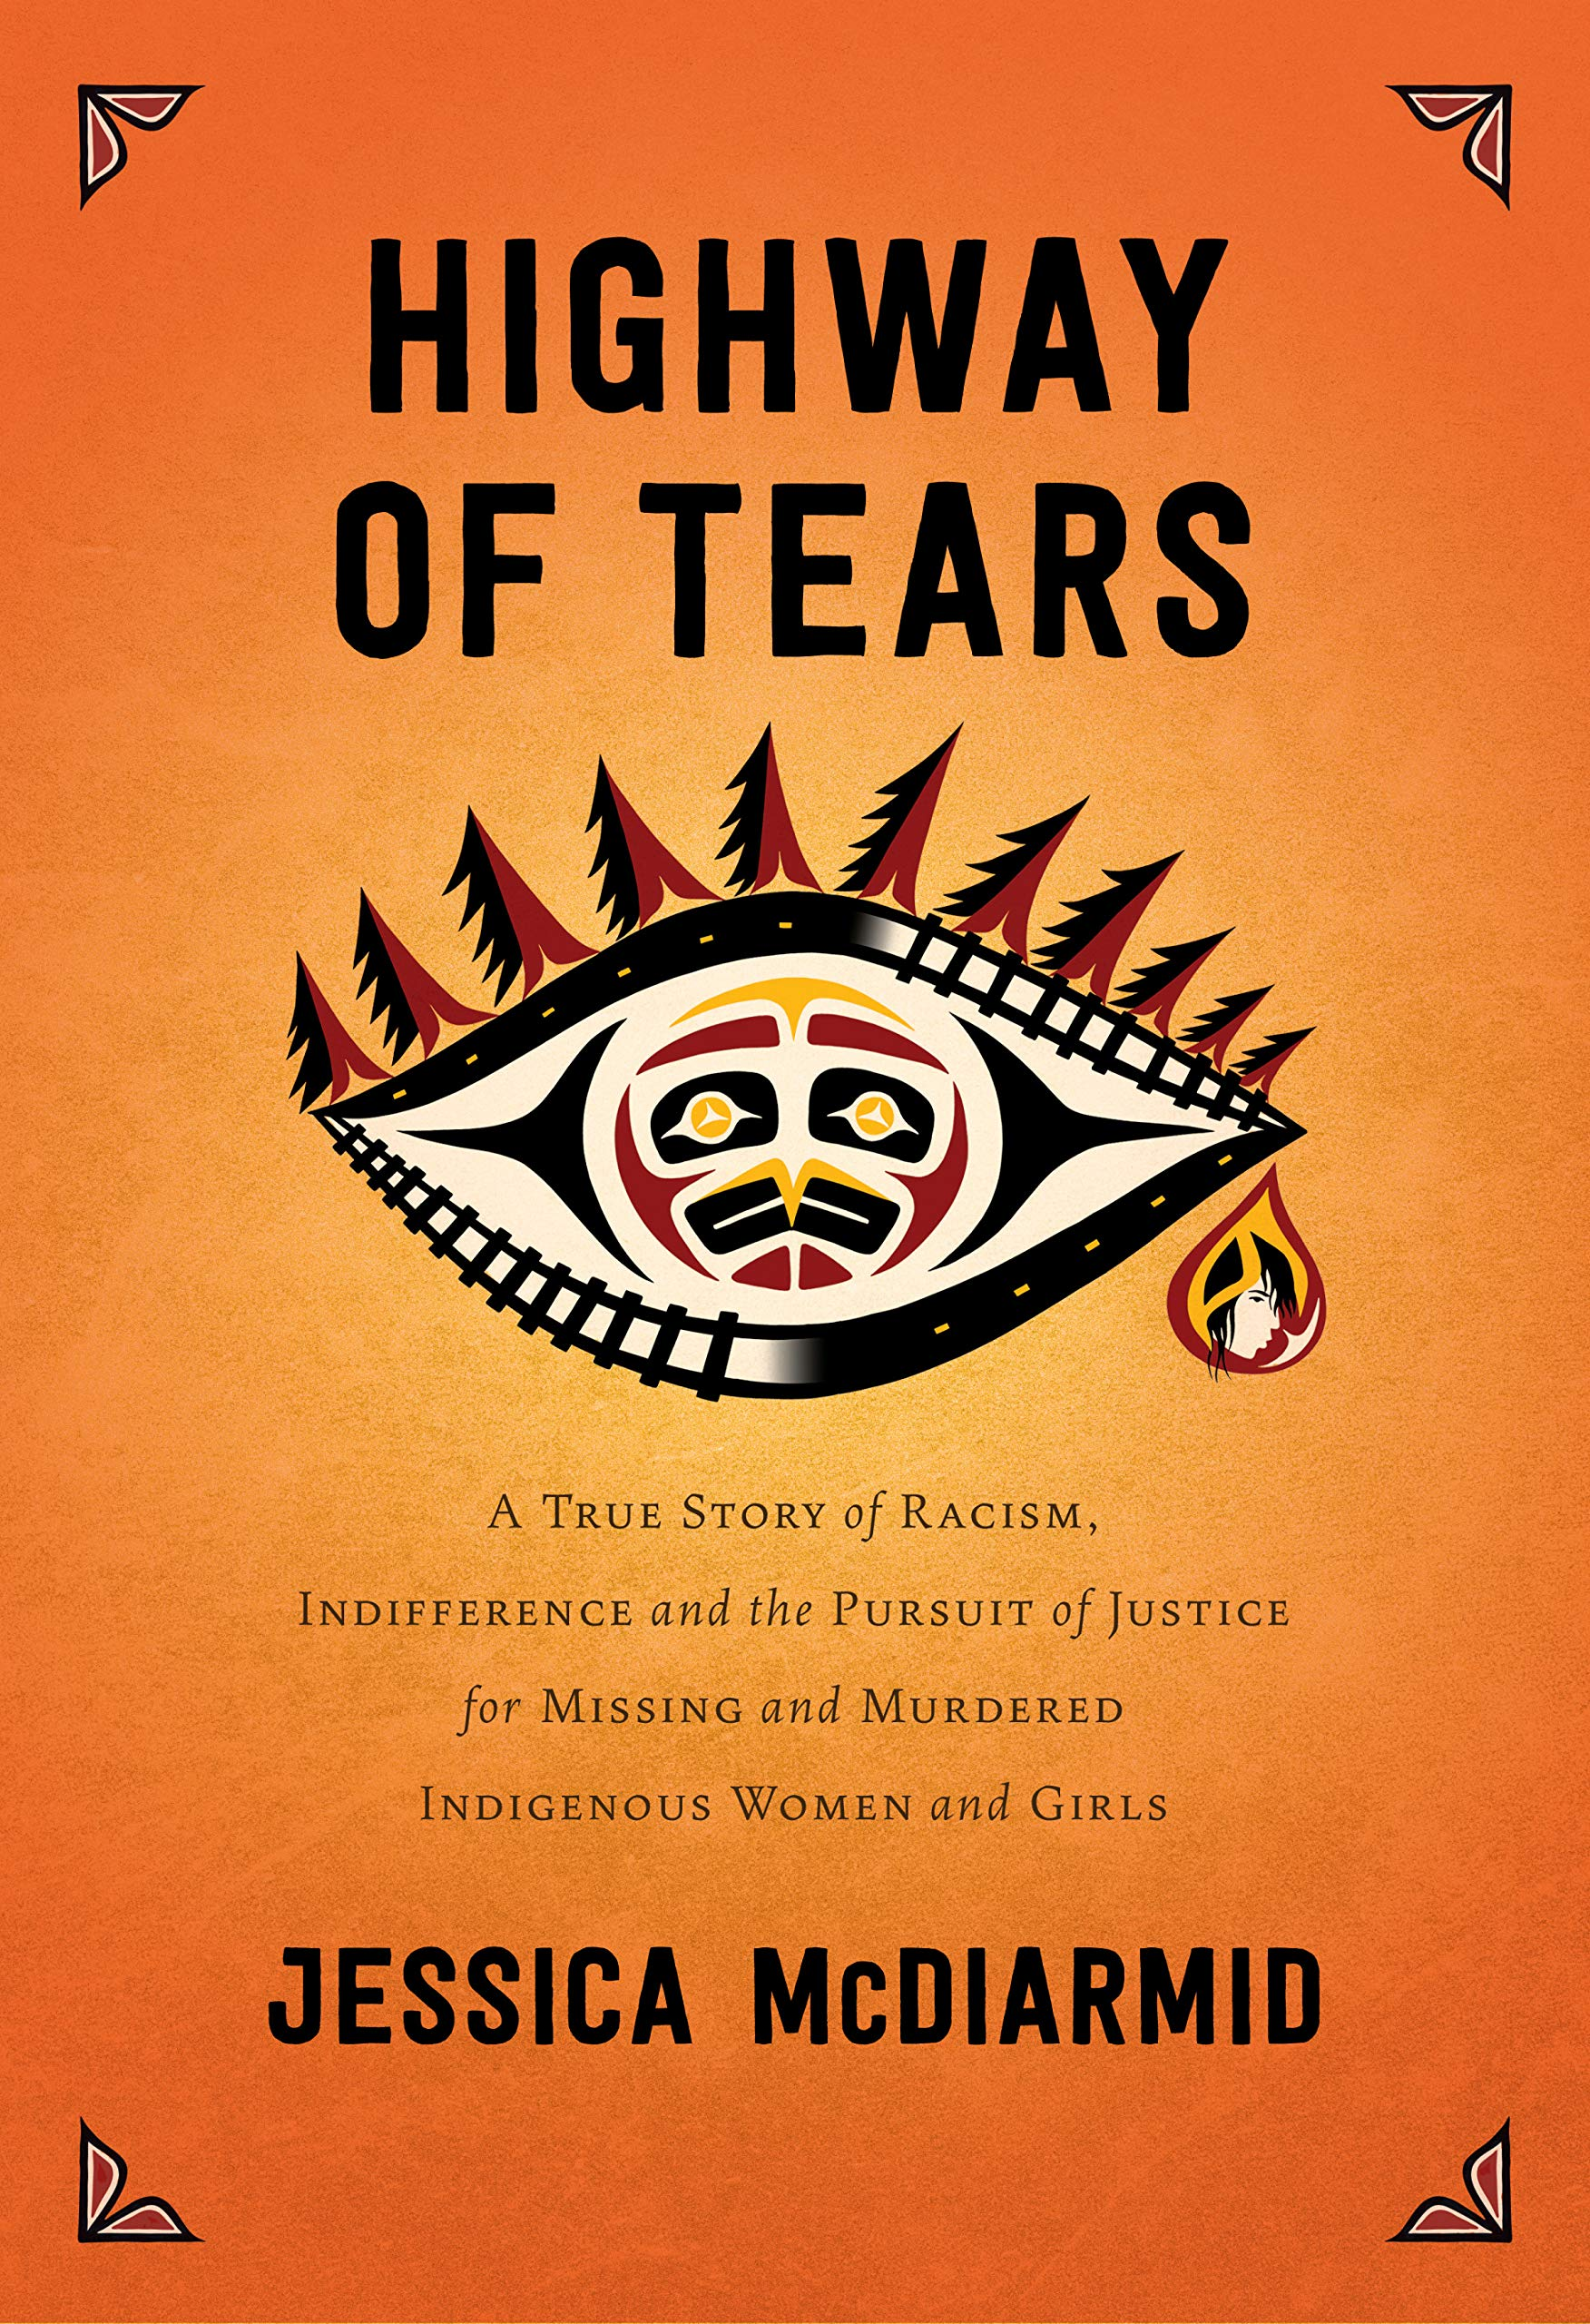 Cover image of Highway of Tears by Jessica McDiarmid